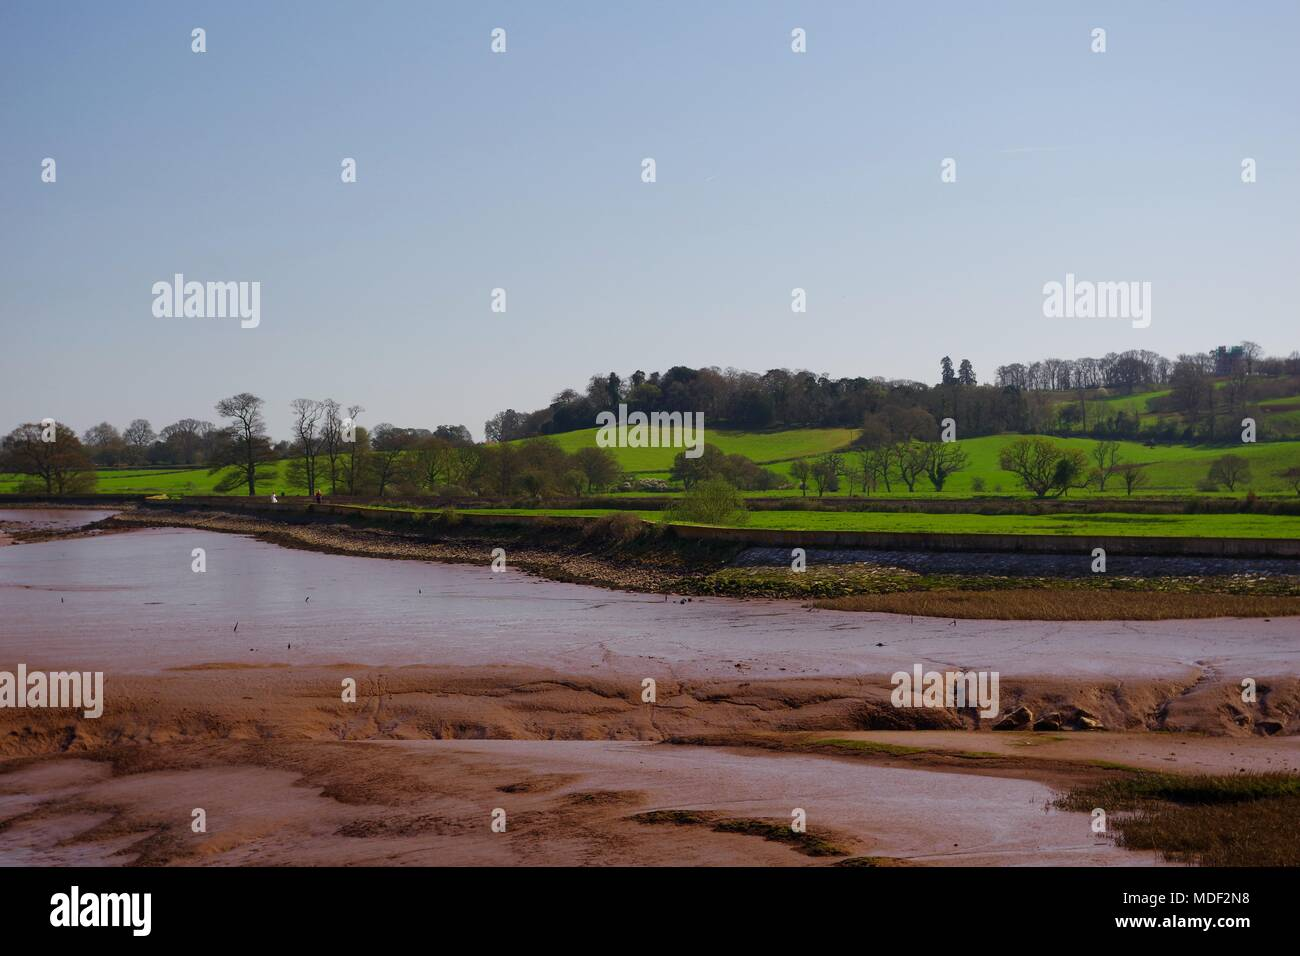 Vibrant Pasture and Wooded Farmland of Powderham beyond Estuarine Mud of the River Exe at Low Tide. Exeter, Devon, UK. April, 2018. - Stock Image